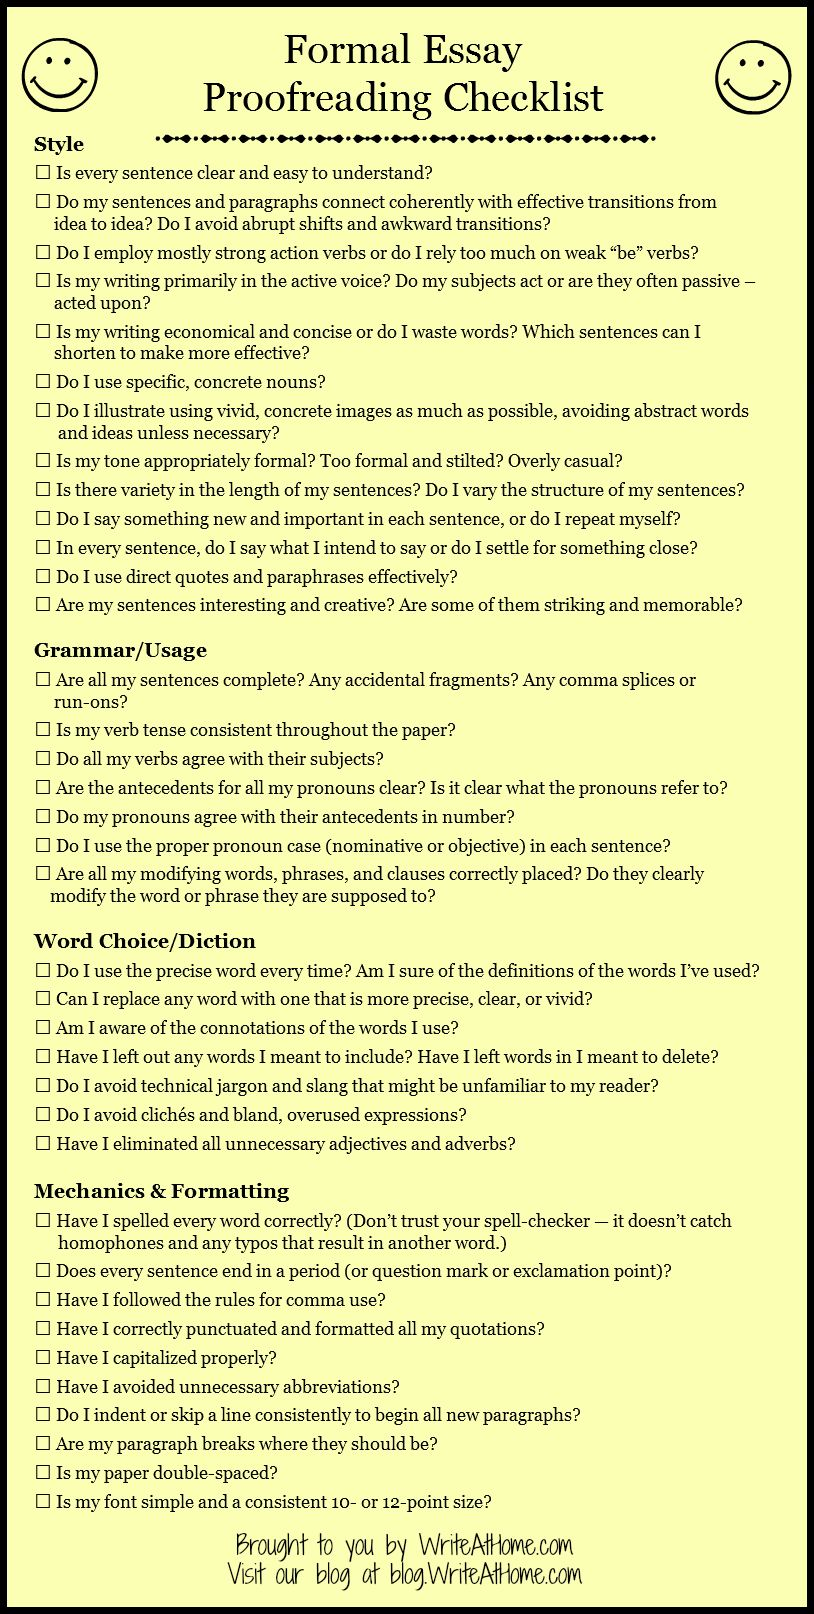 Basic Essay Proofreading Checklist Could Make Into A Rubric  Basic Essay Proofreading Checklist Could Make Into A Rubric Science Assignment Helper also English Essay Topics For College Students  Thesis Statement Argumentative Essay